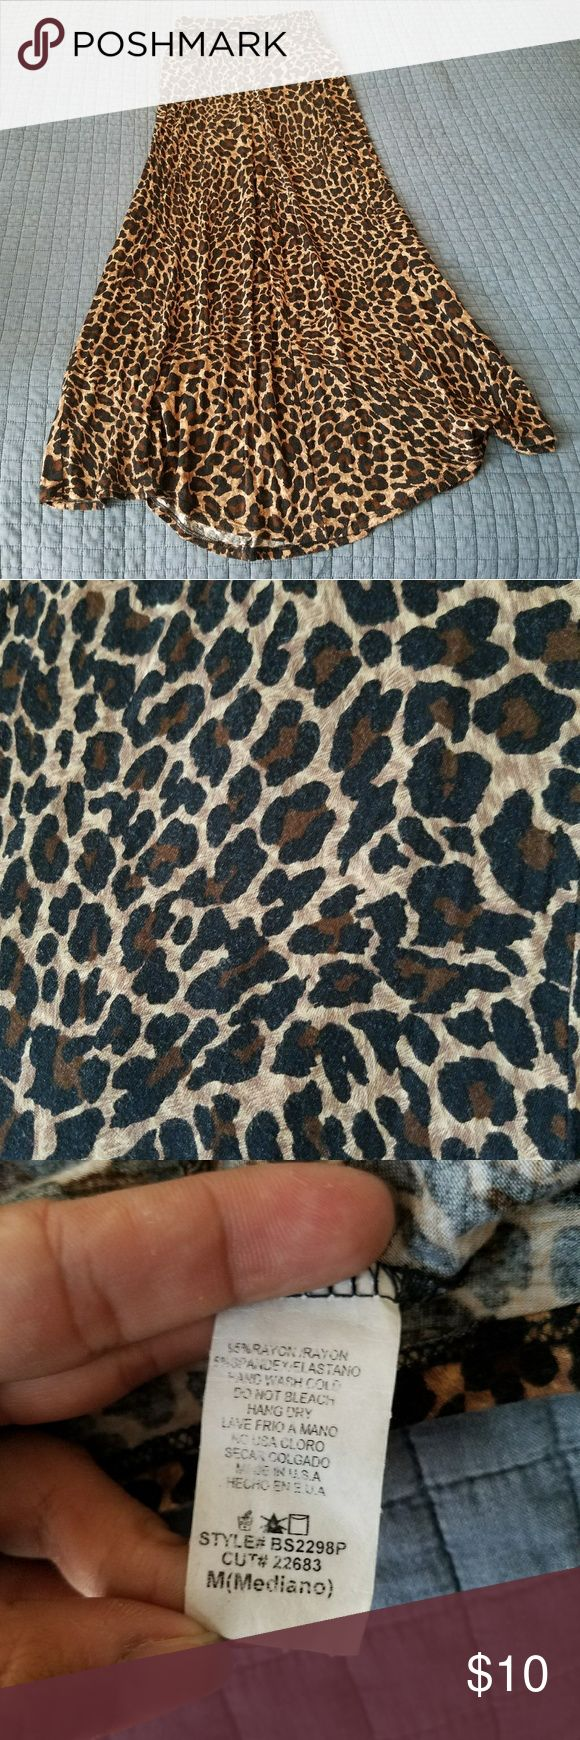 Leopard maxi skirt Leopard maxi skirt, some signs of wear but very comfortable and flowy! Skirts Maxi